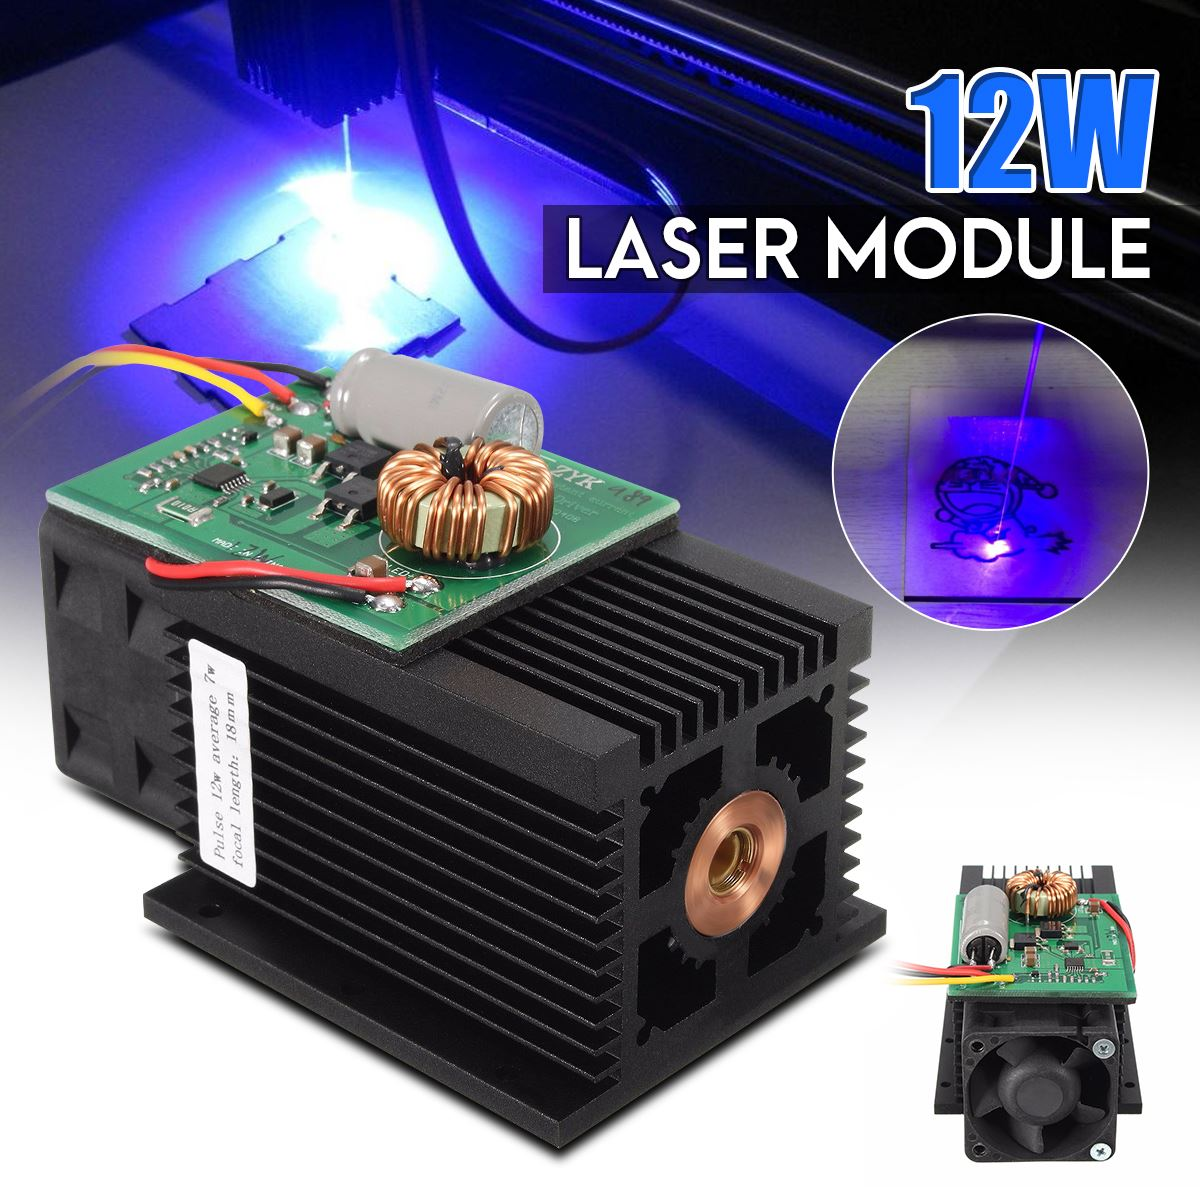 12W Blue Light Laser Module 450nm TTL Blue Laser Head DC 12V High Power for Mini DIY Metal Wood Engraving Cutter Machine blue laser head engraving module wood marking diode 2 5w glasses circuit board for engraver wood metal plastic carving mayitr